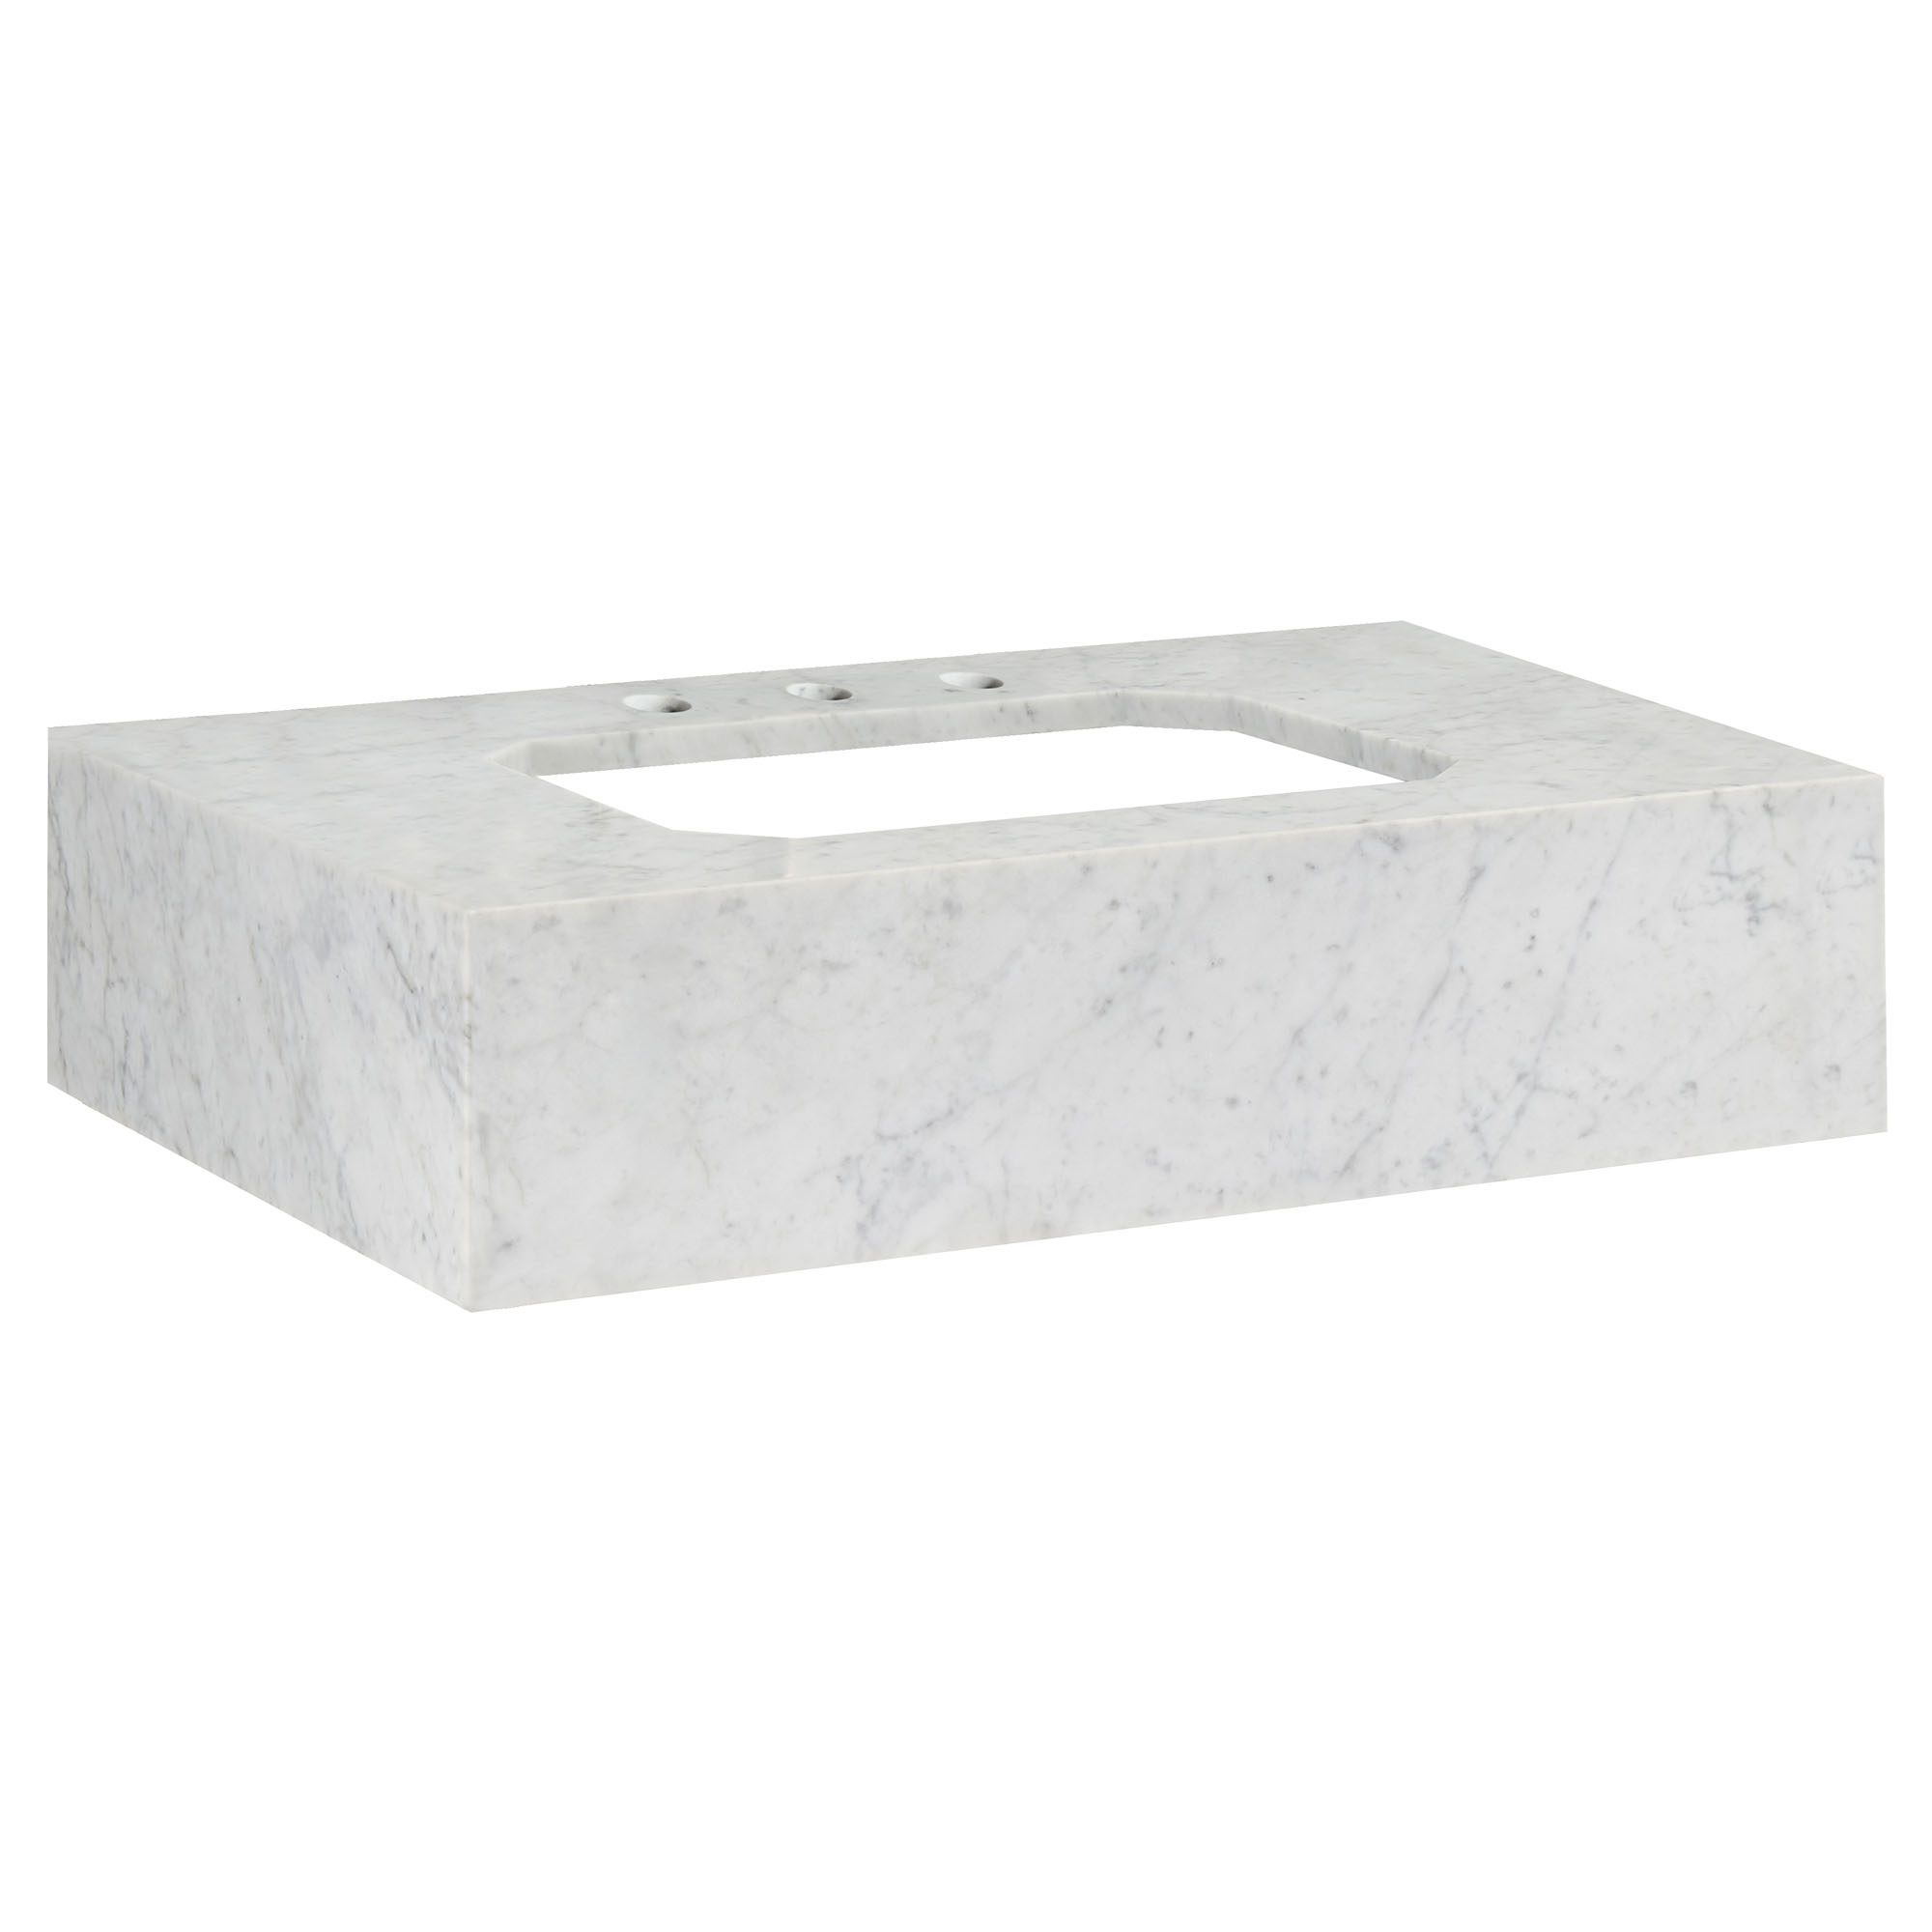 Belshire 30in Carrara Marble Vanity Console - 3 holes